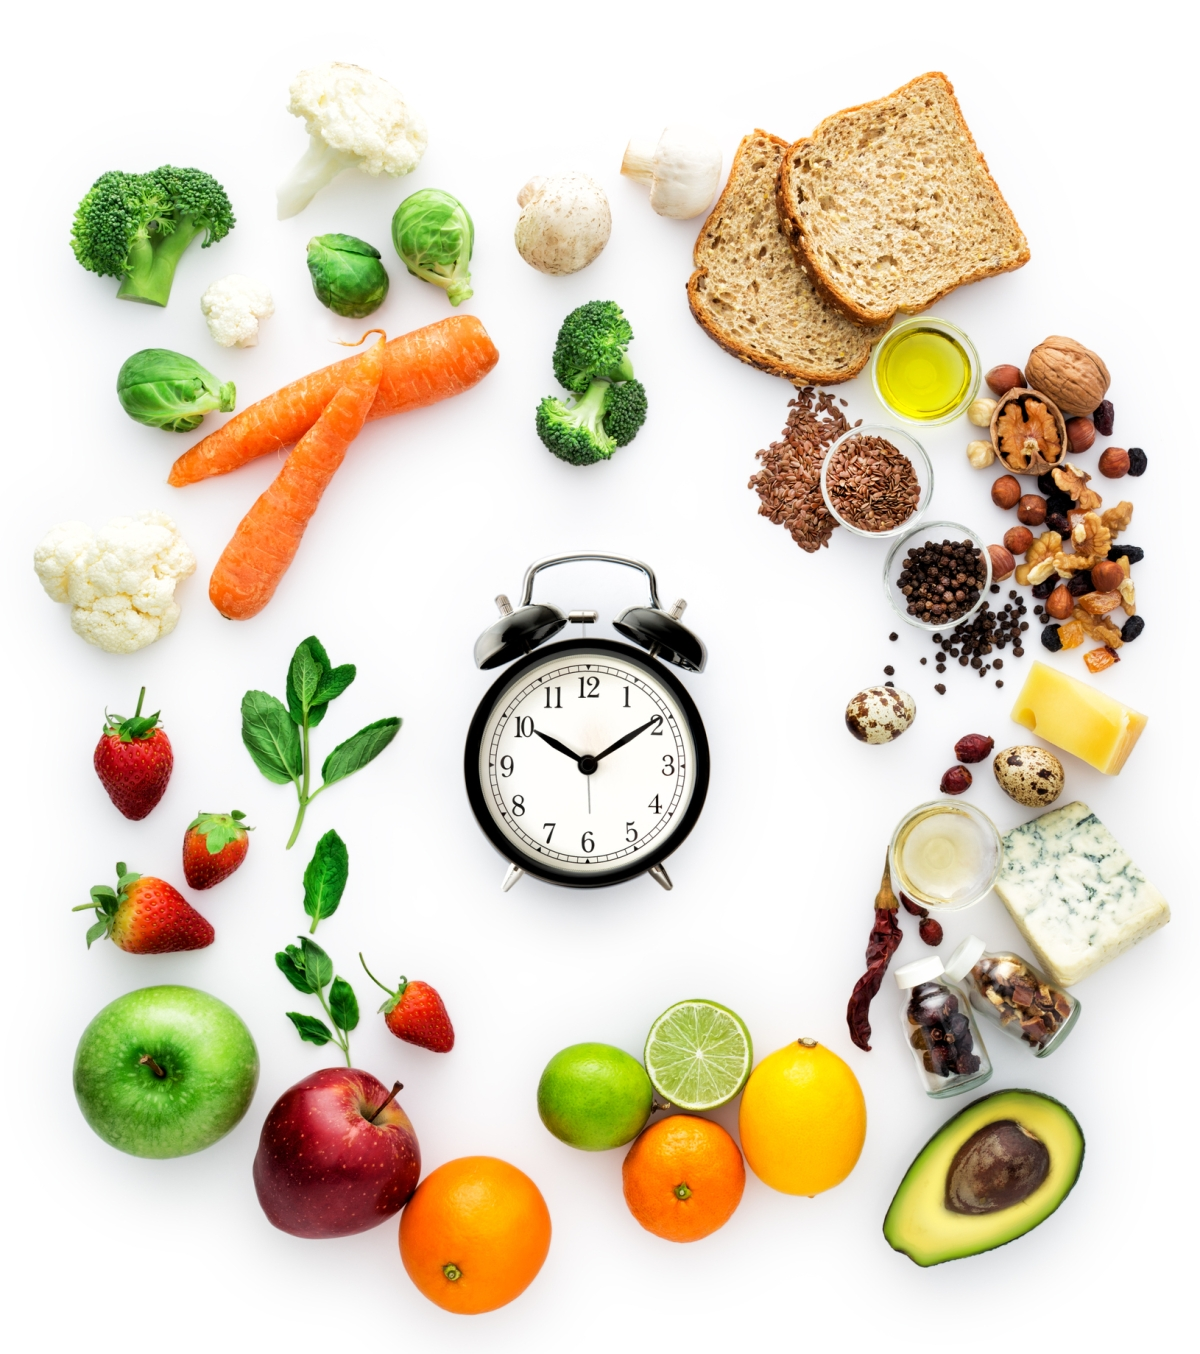 One should balance their diet with plant foods, fish, and whole grains - parts of a healthy diet that have been linked to a lower risk of cancer.